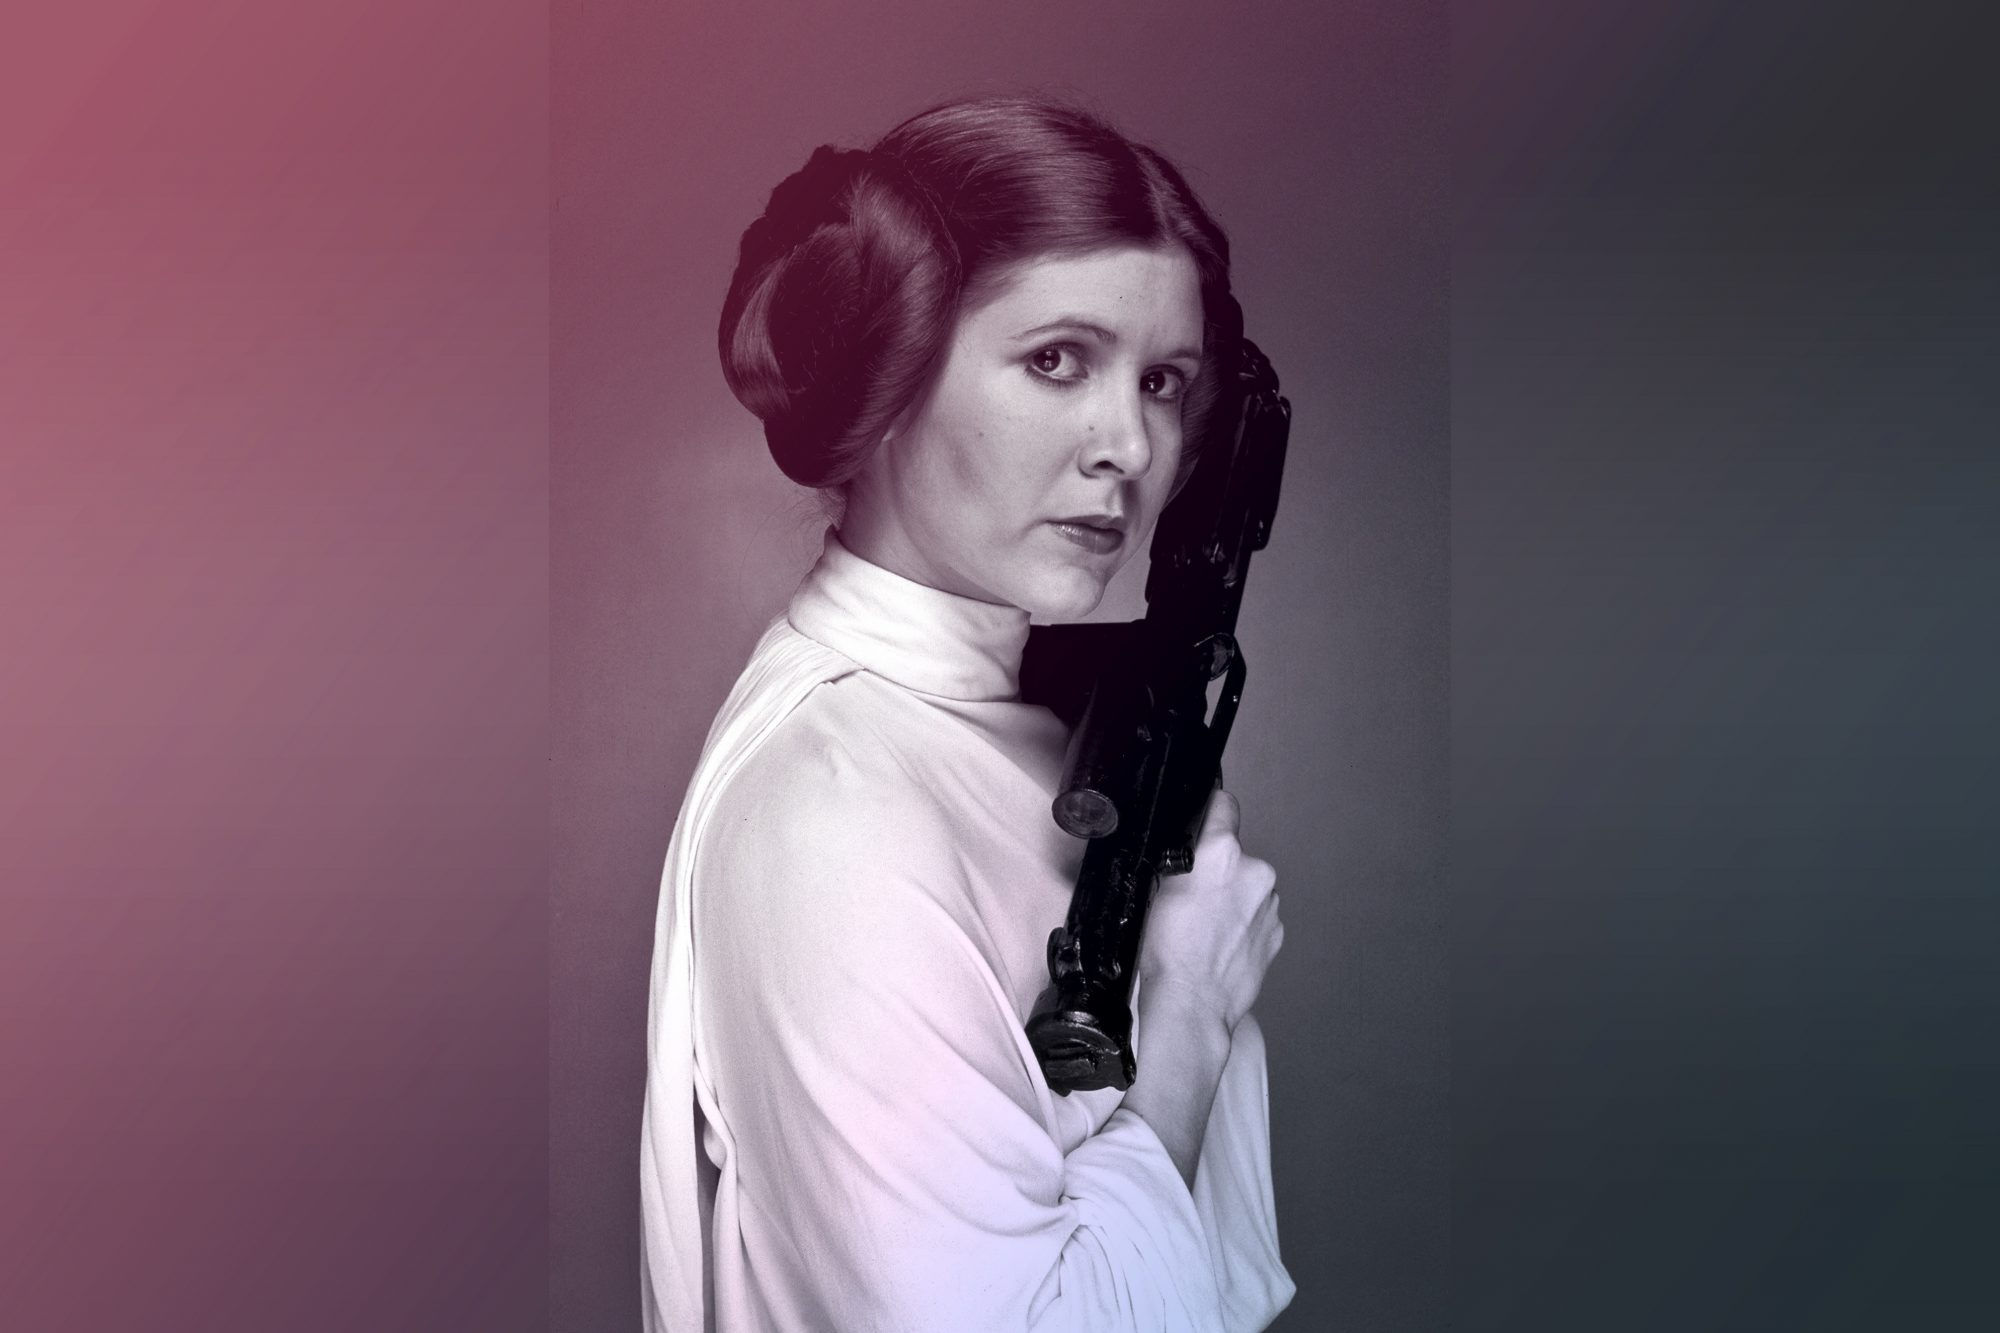 Aactress Carrie Fisher on the set of Star Wars as Princess Leia